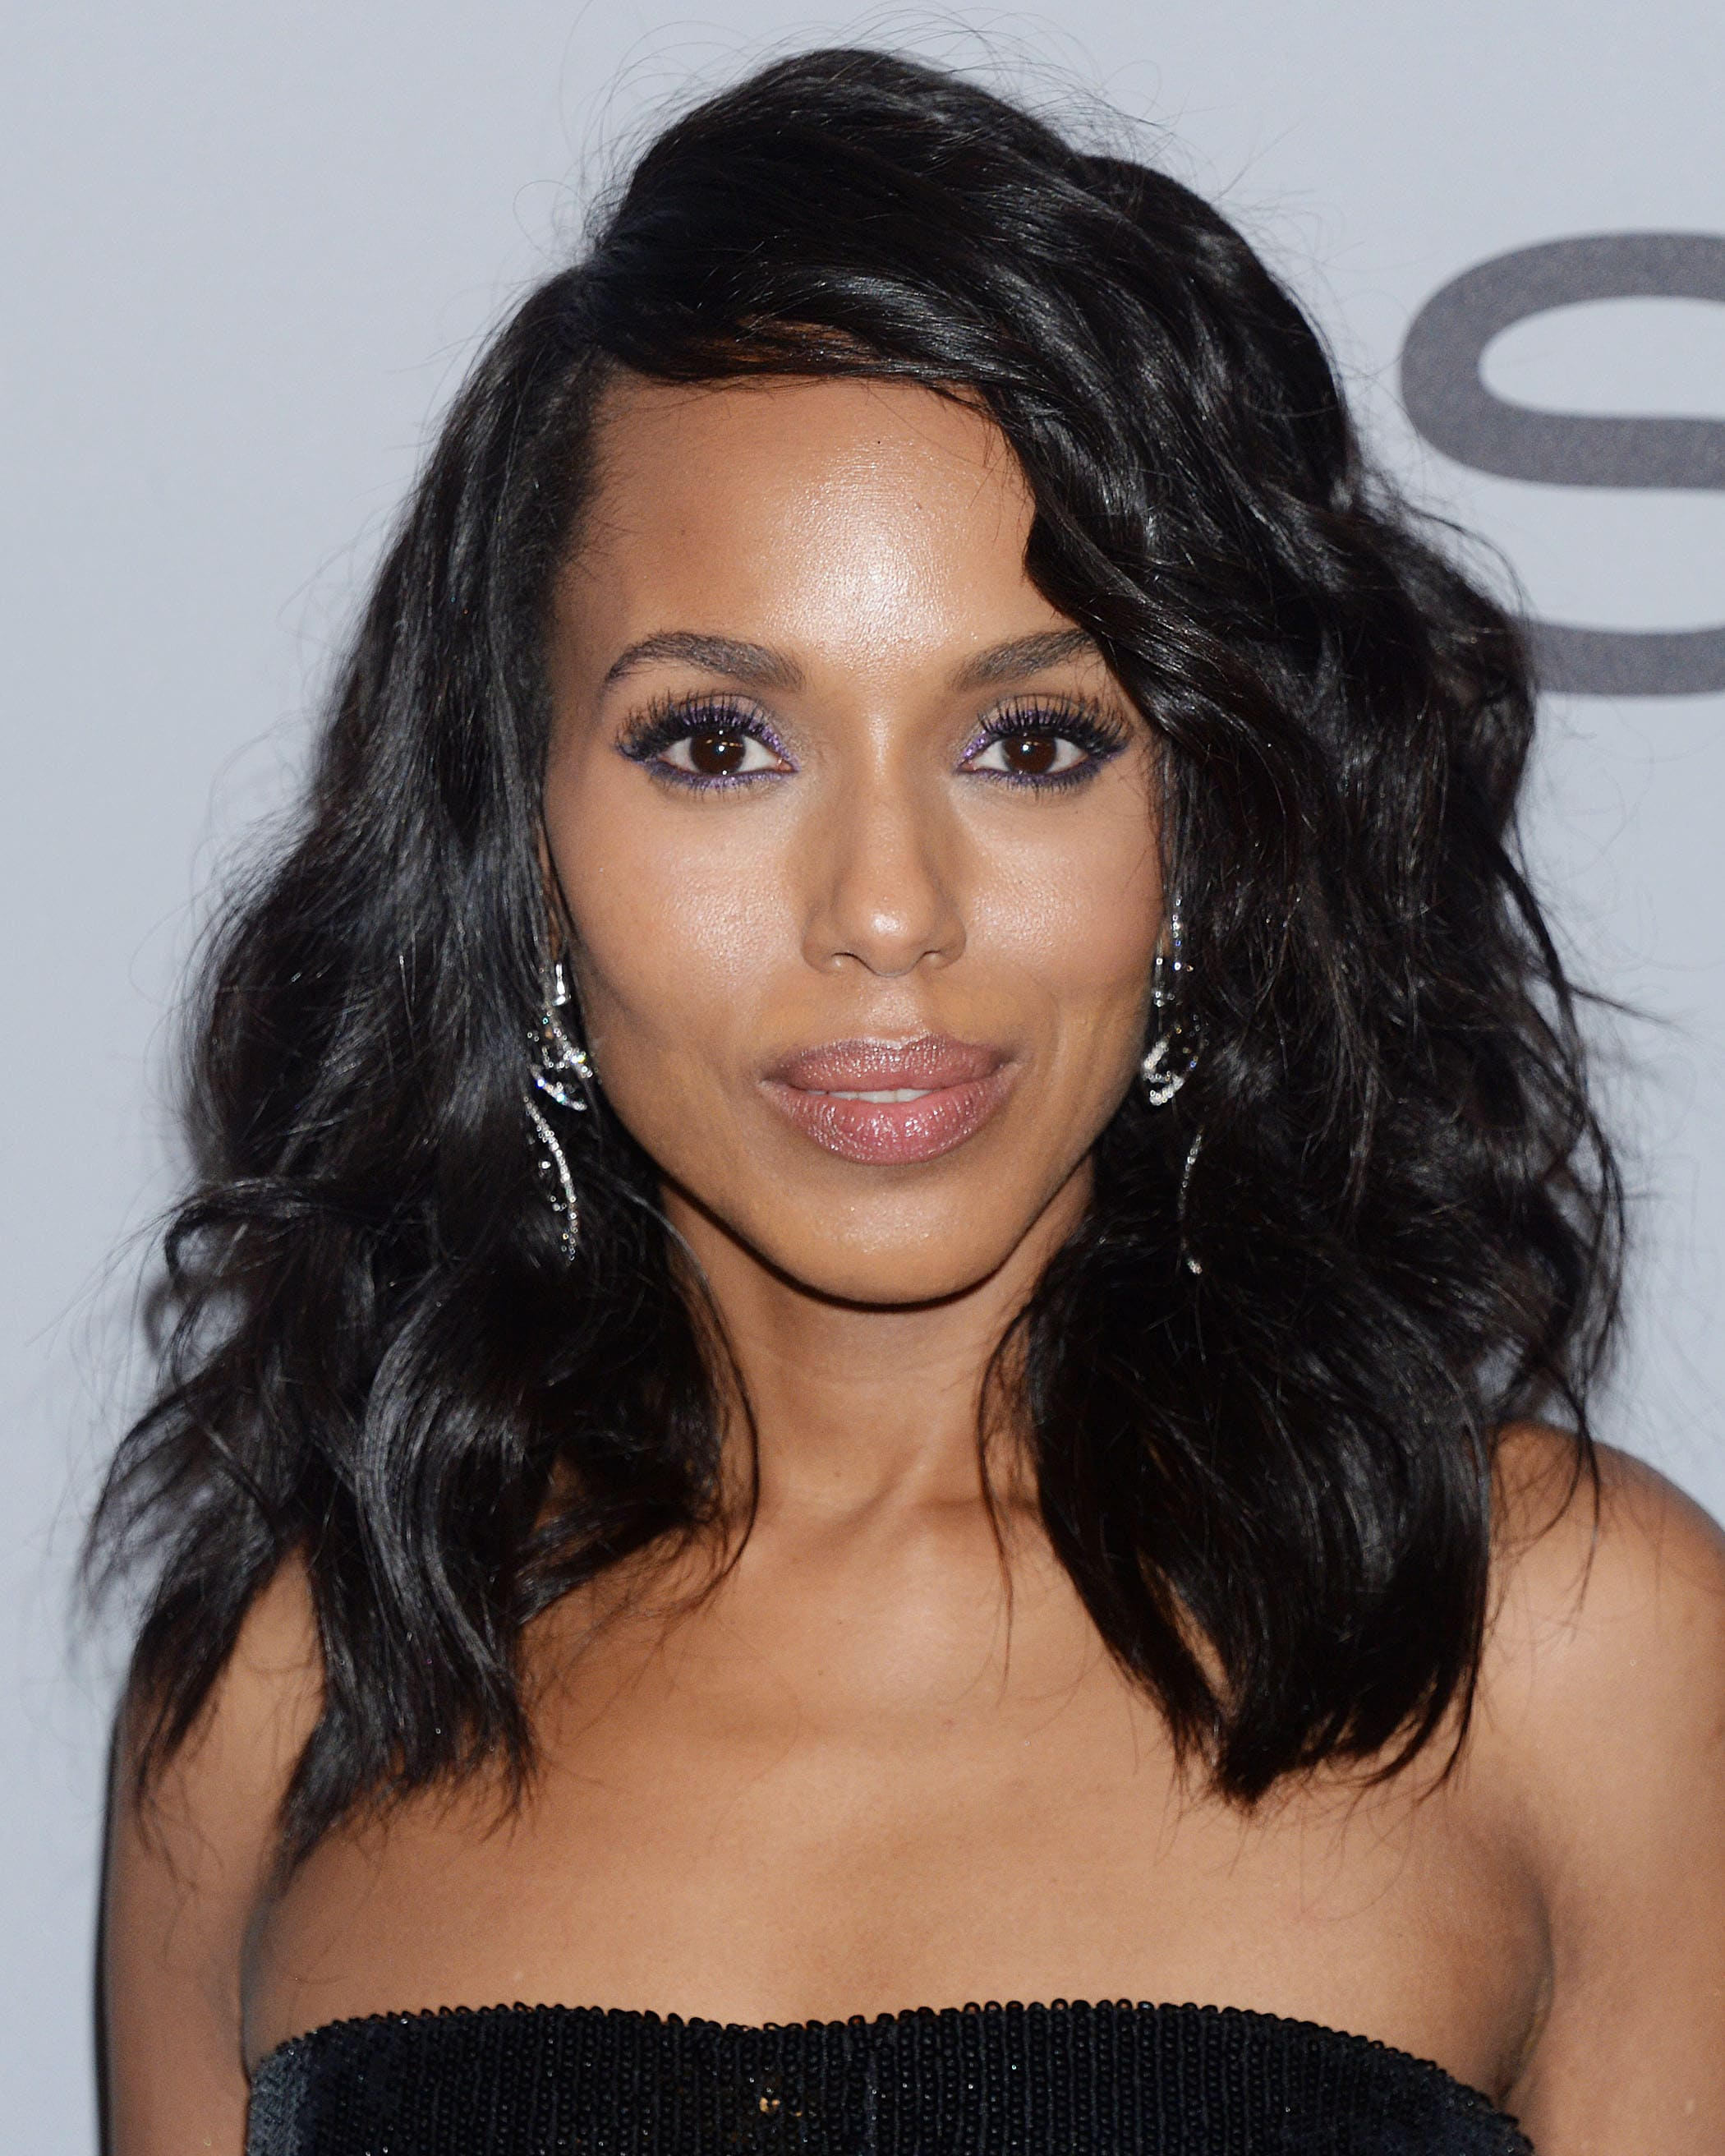 Medium hairstyles for thick hair: Kerry Washington with shoulder-length dark hair in a side parting with waves